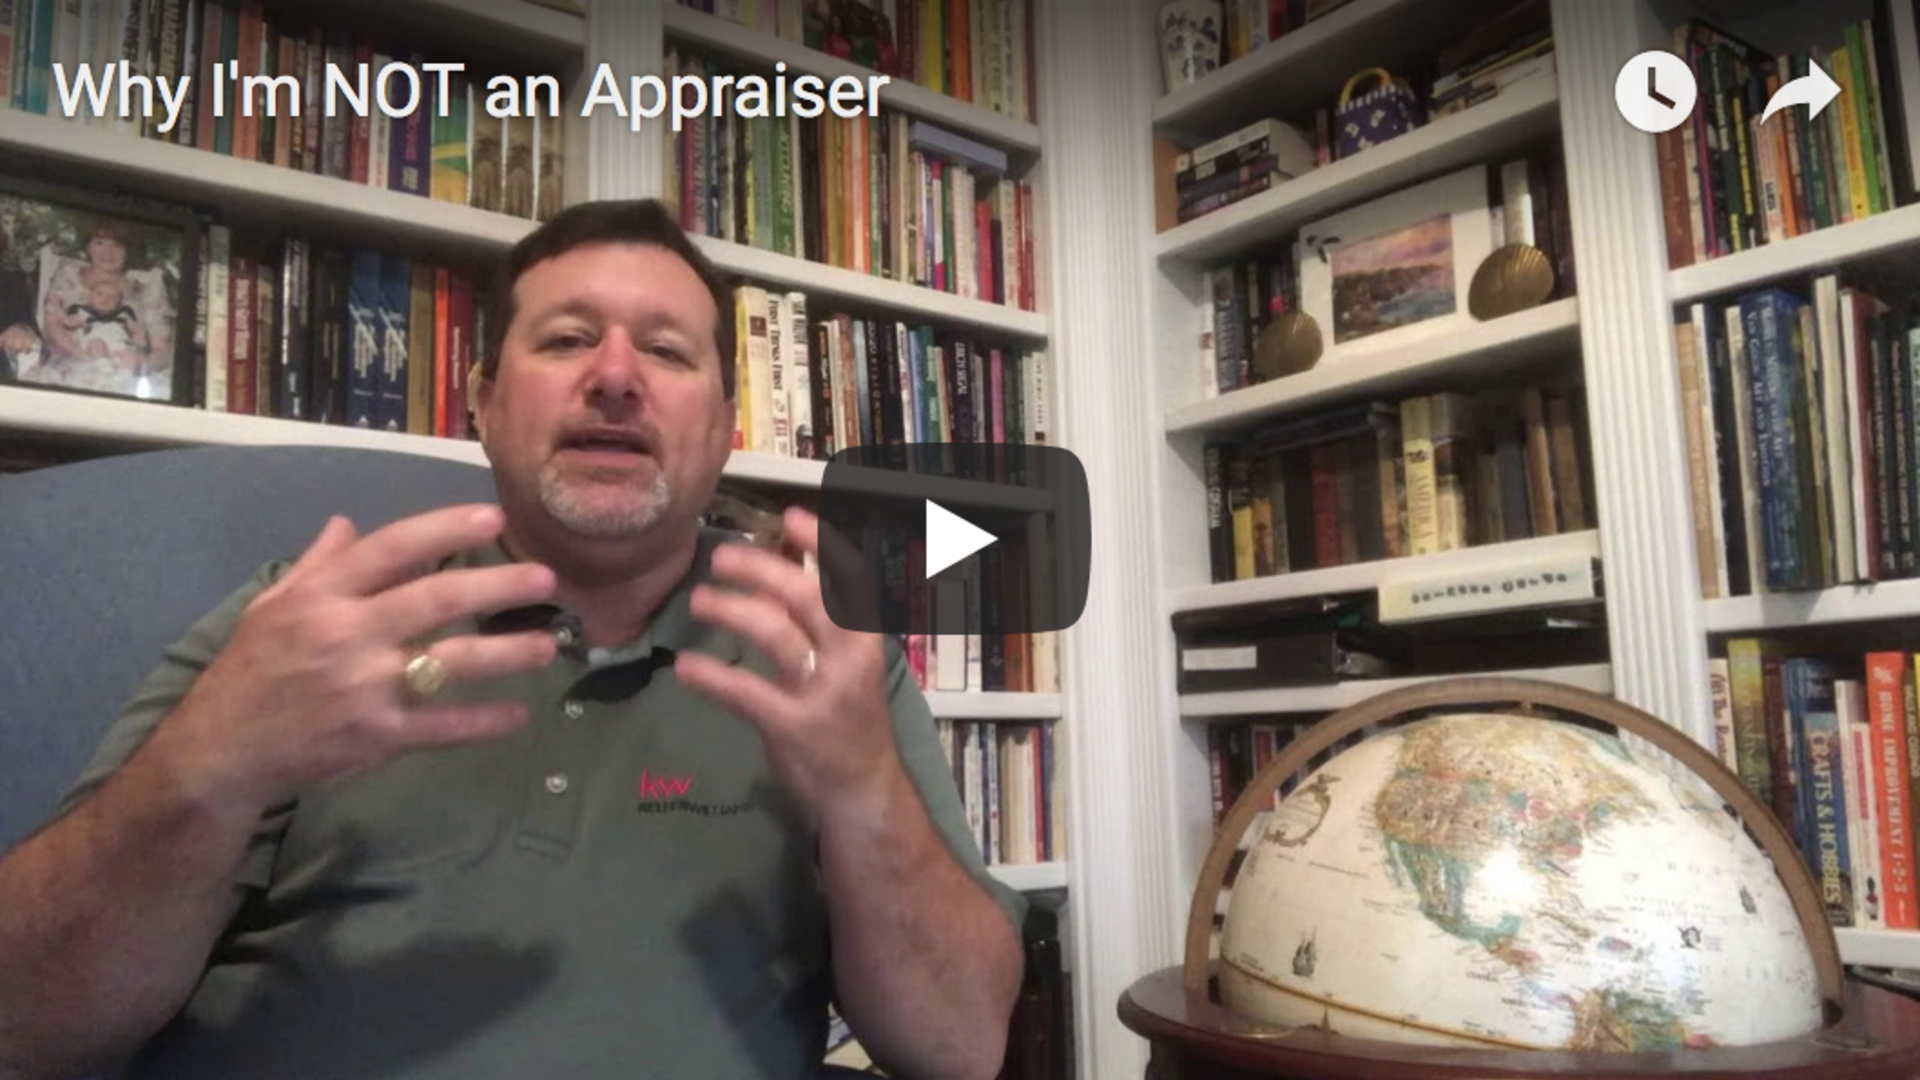 Why I'm not an appraiser